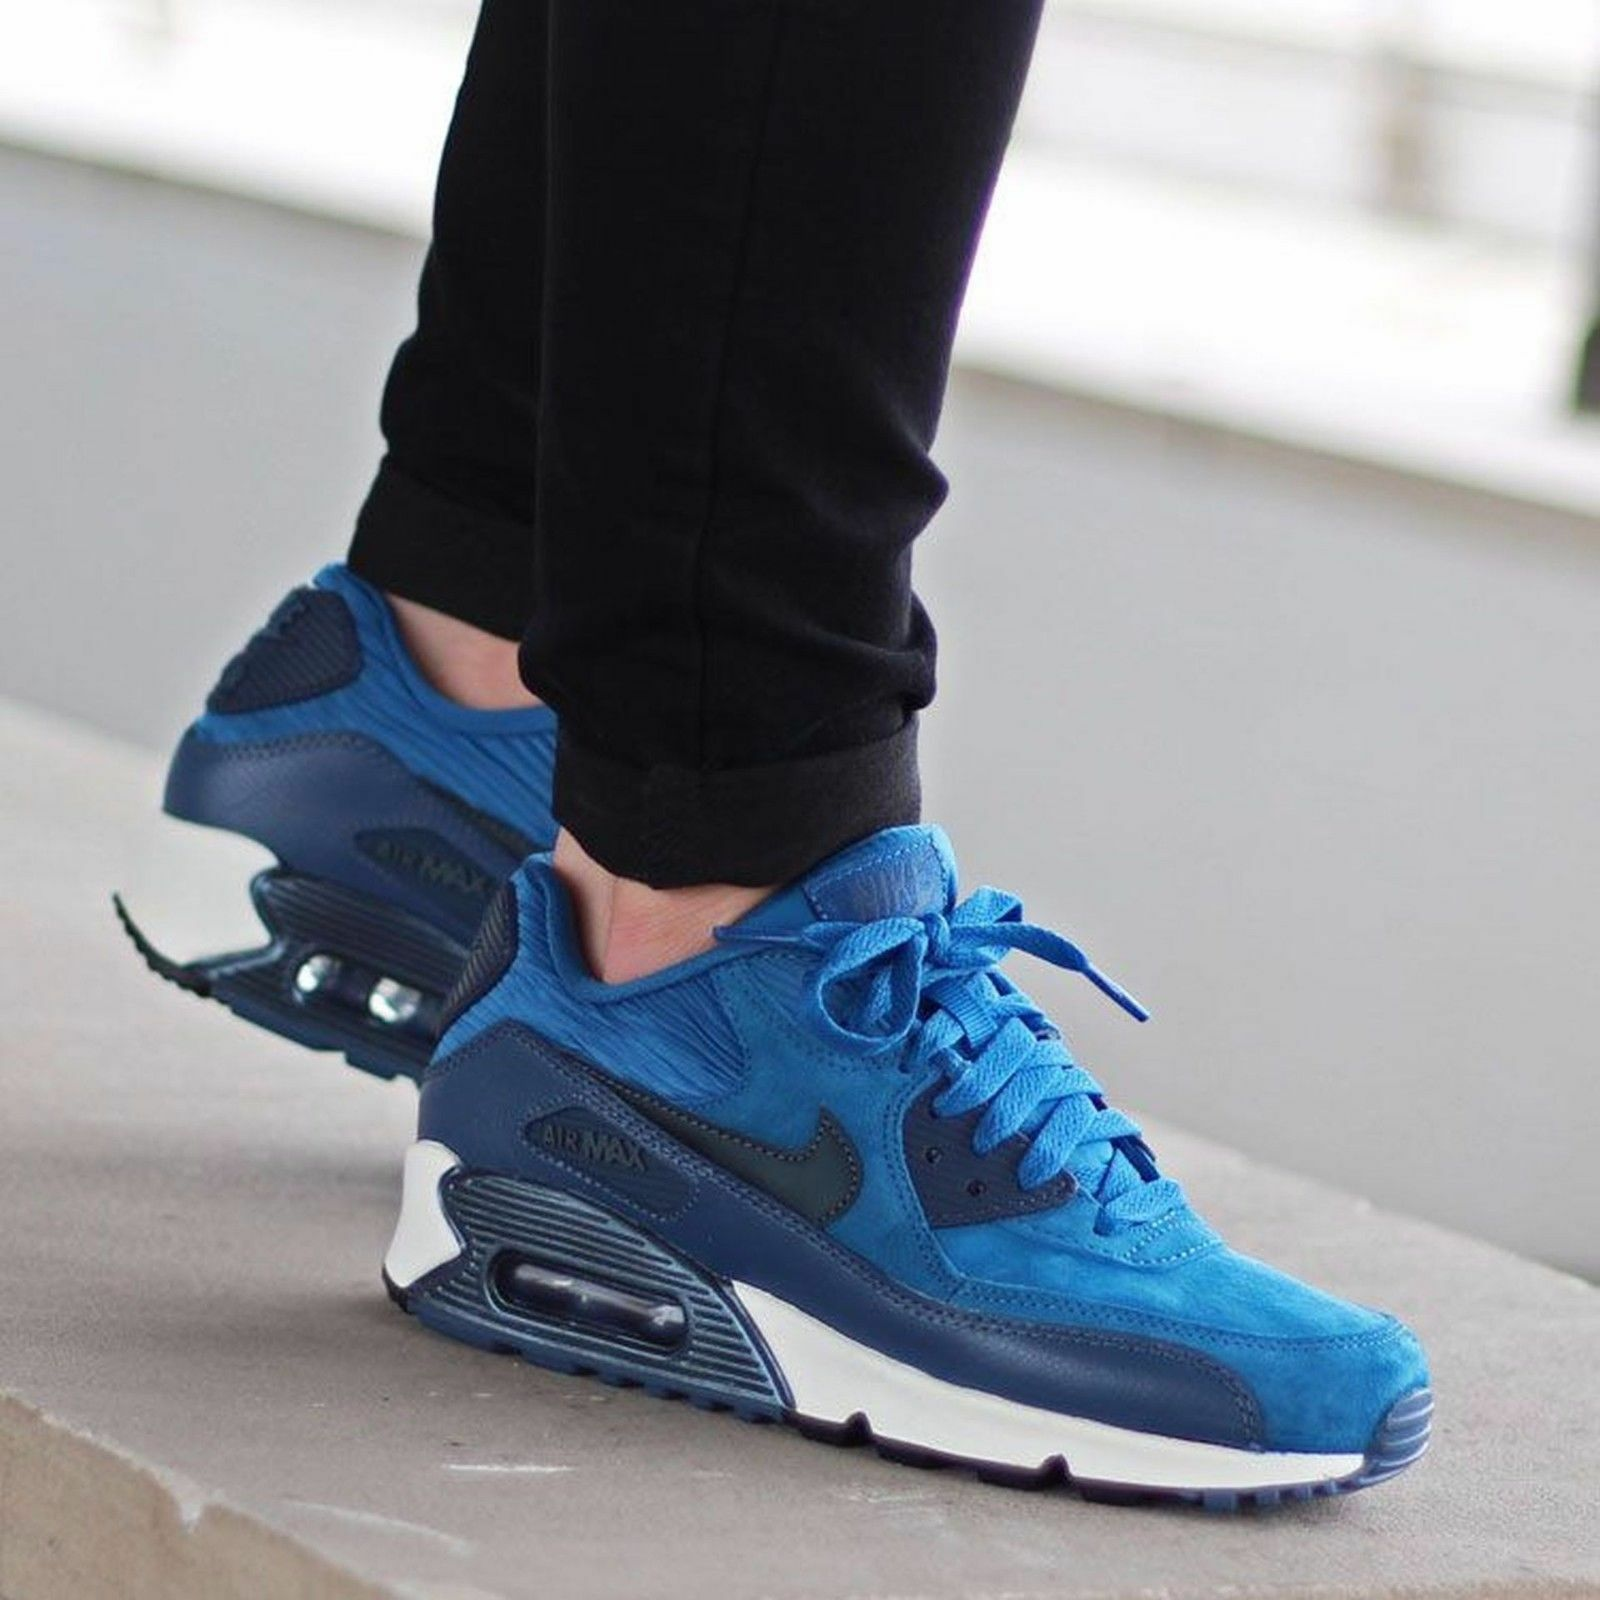 Women's Nike Air Max 90 Sneakers New, Armory Navy Blue 768887-401 sku AA